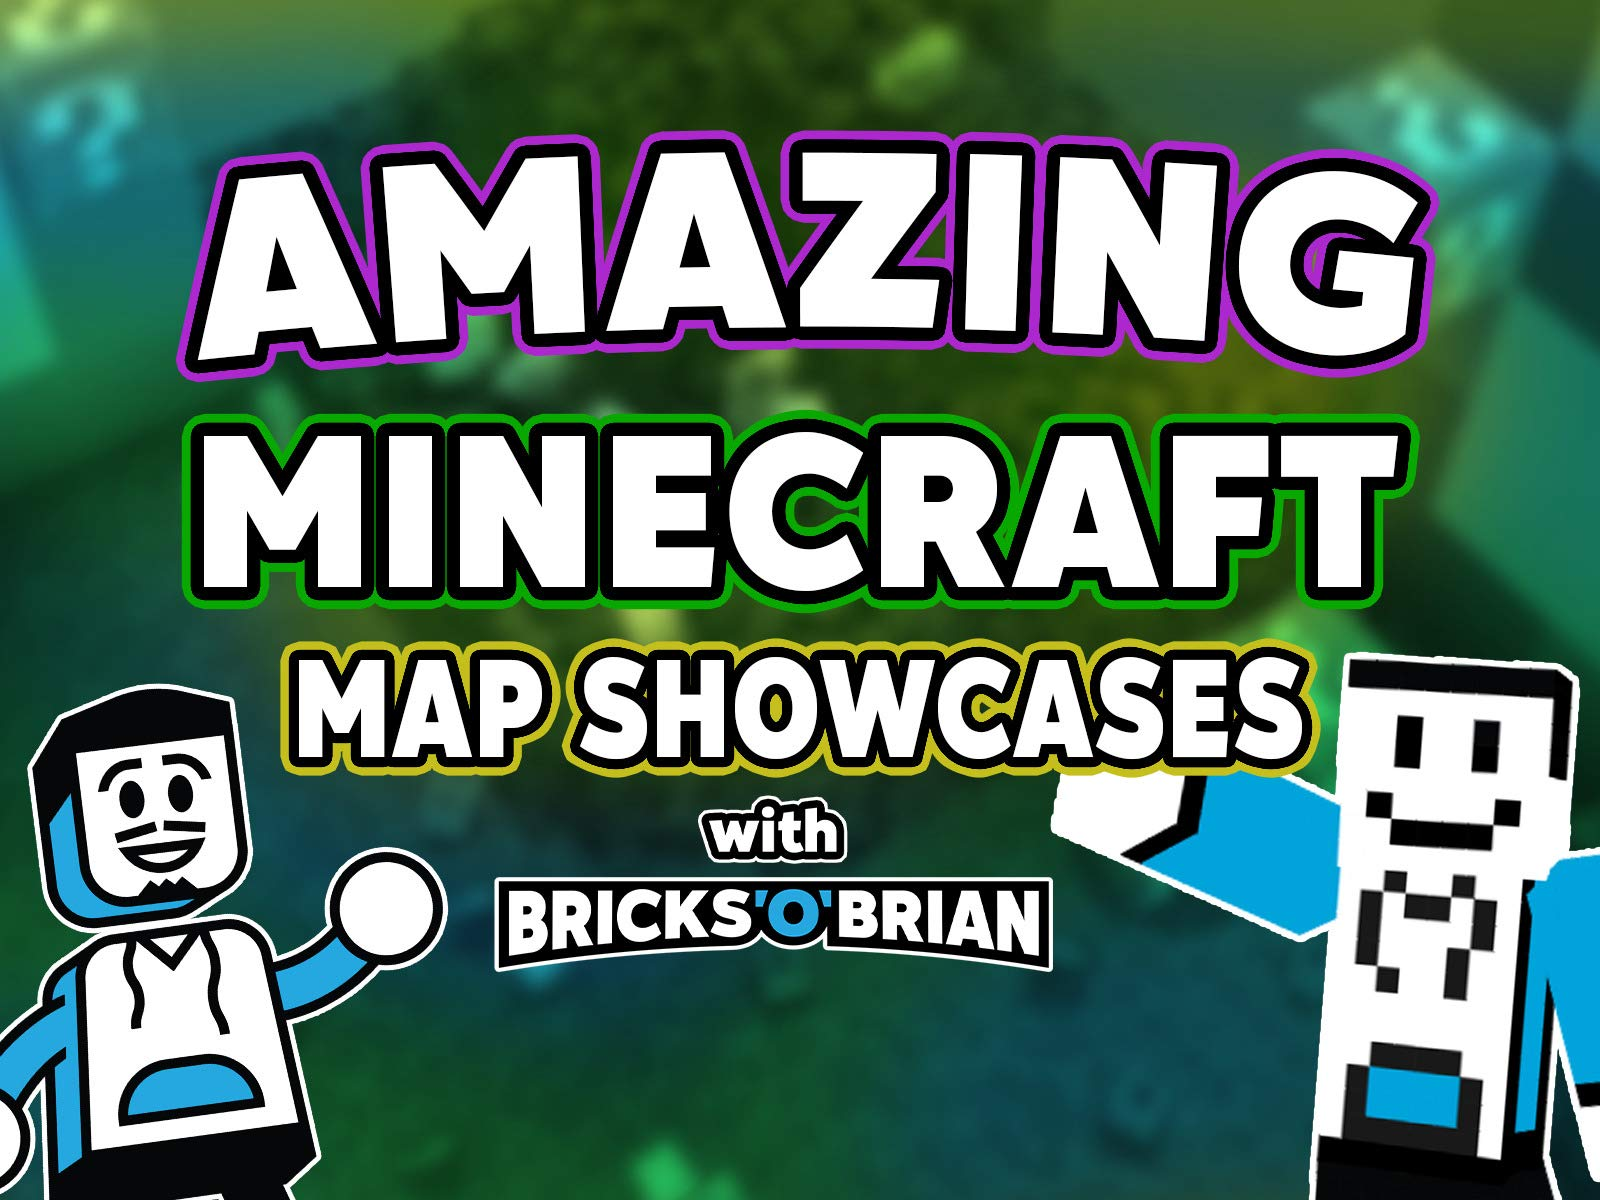 Clip: Amazing Minecraft Map Showcases with Bricks 'O' Brian! - Season 1